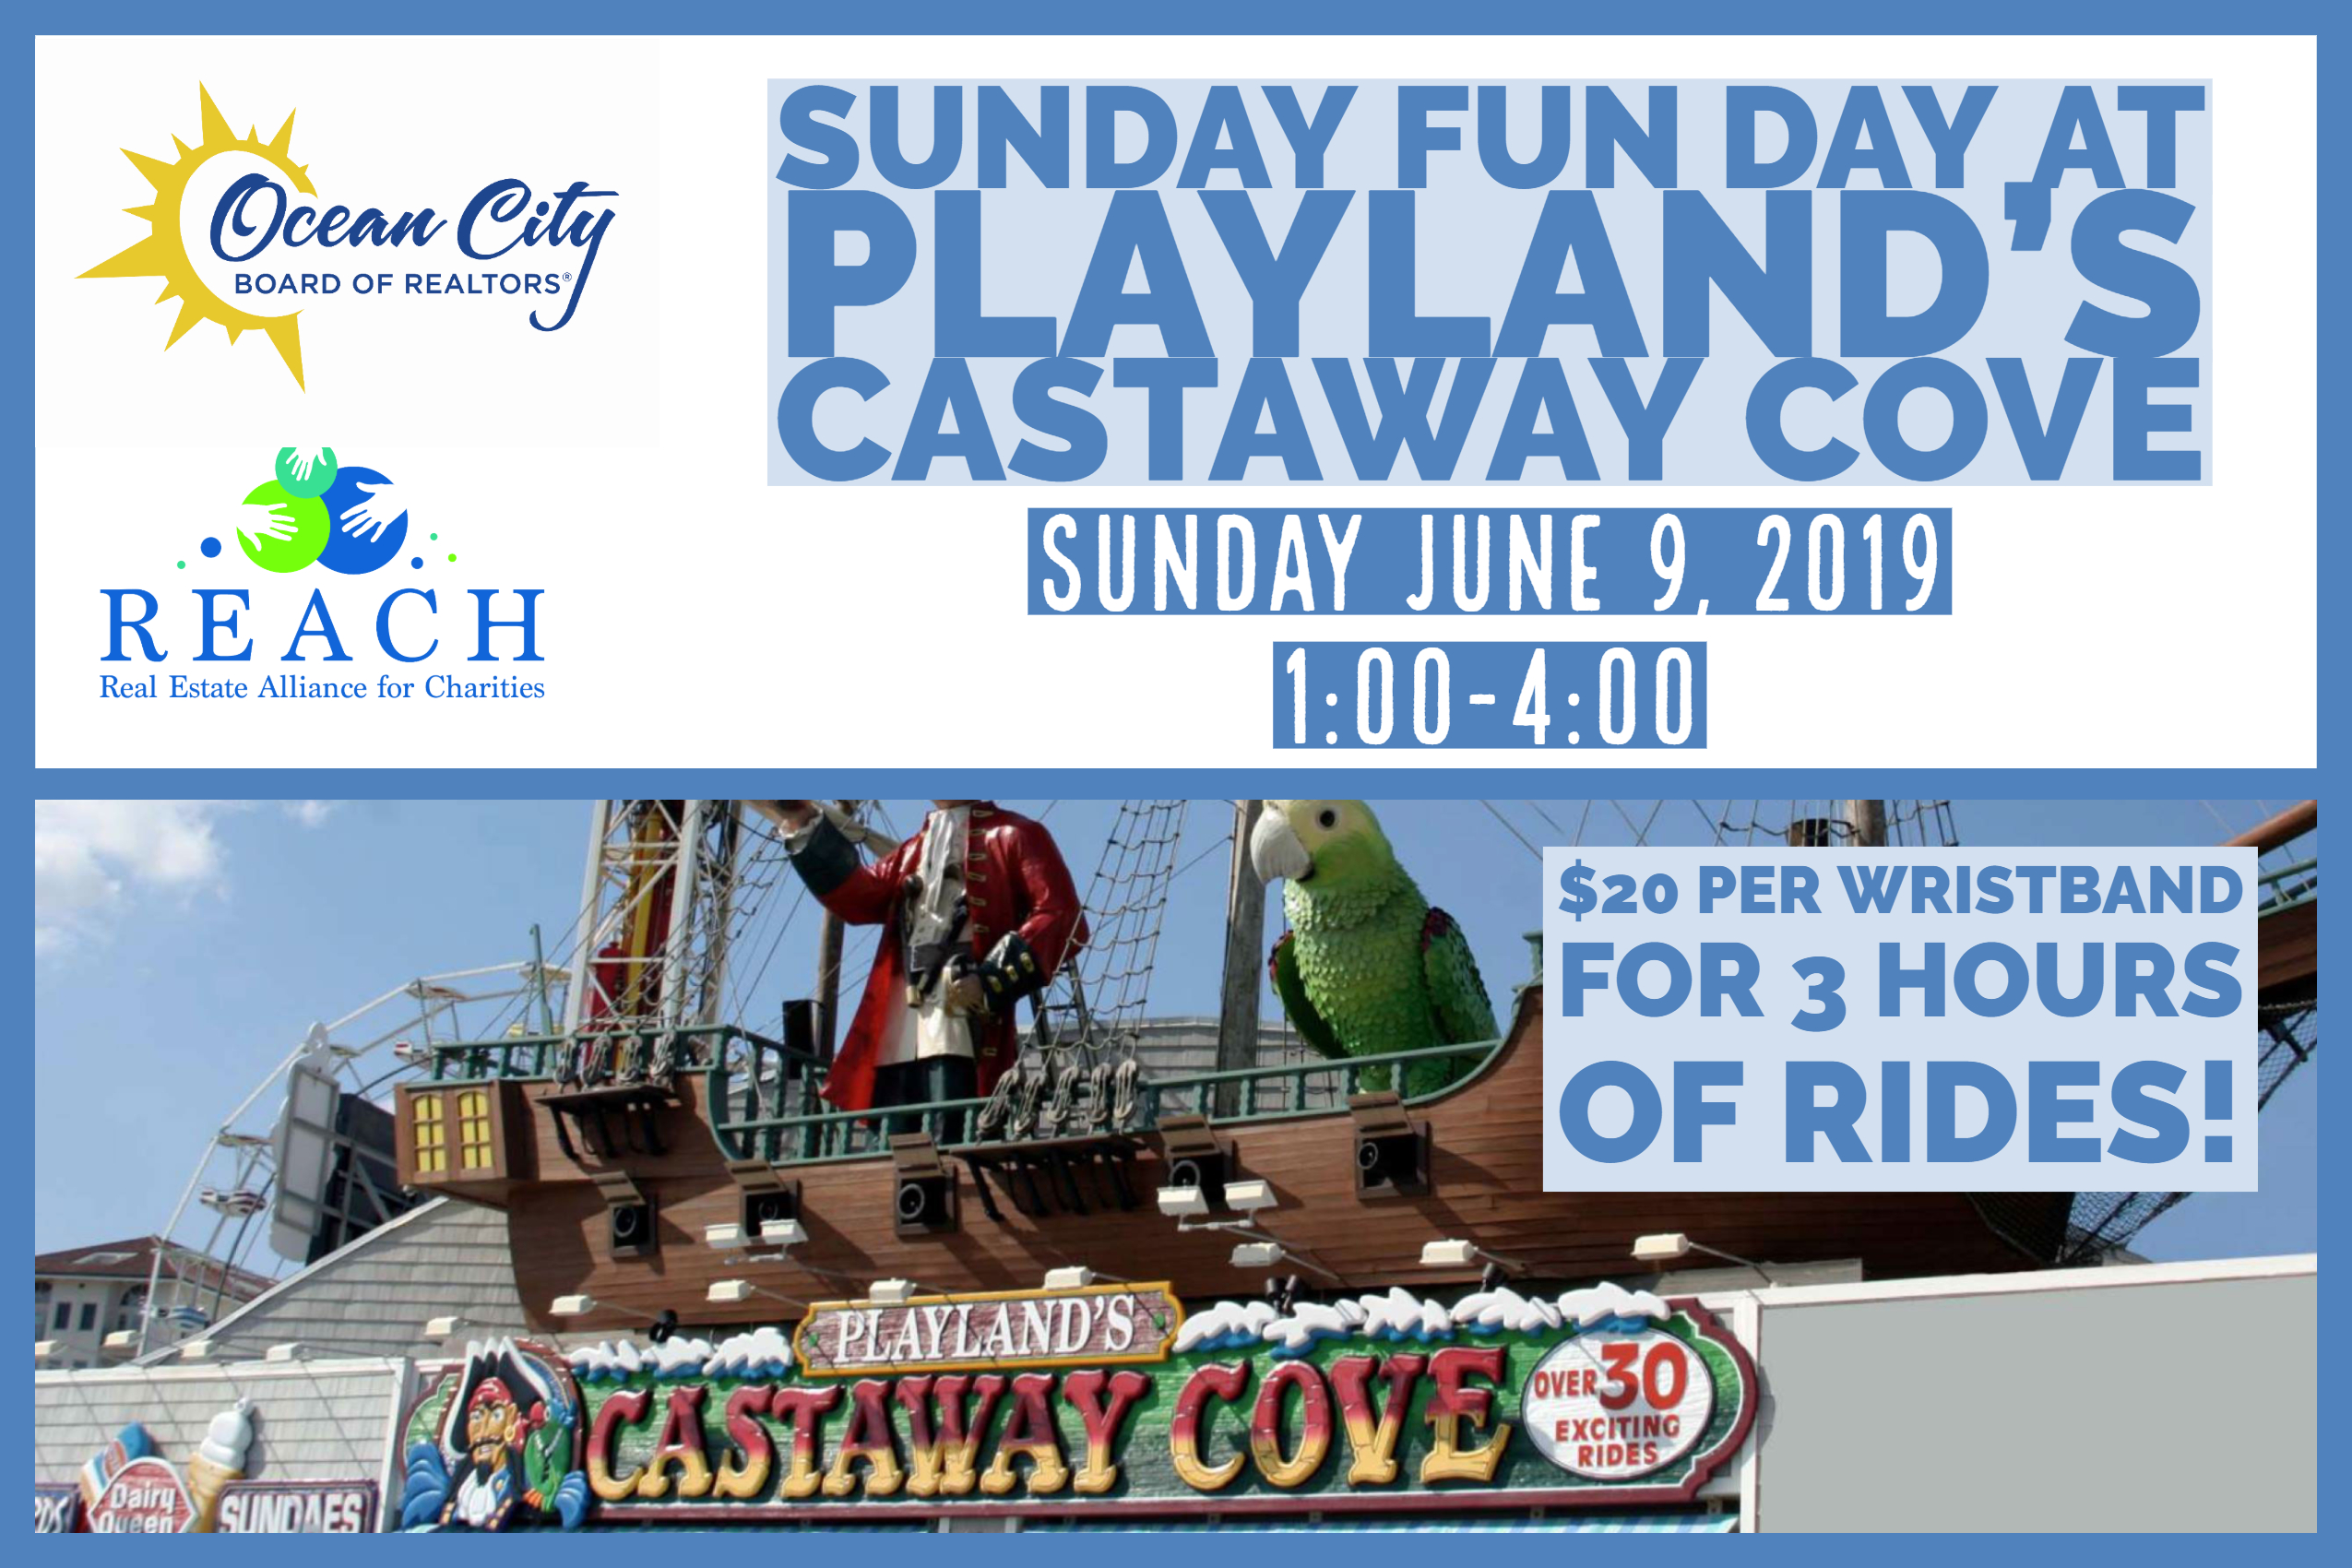 REACH OCNJ hosts Sunday Funday at Playlands castaway cove